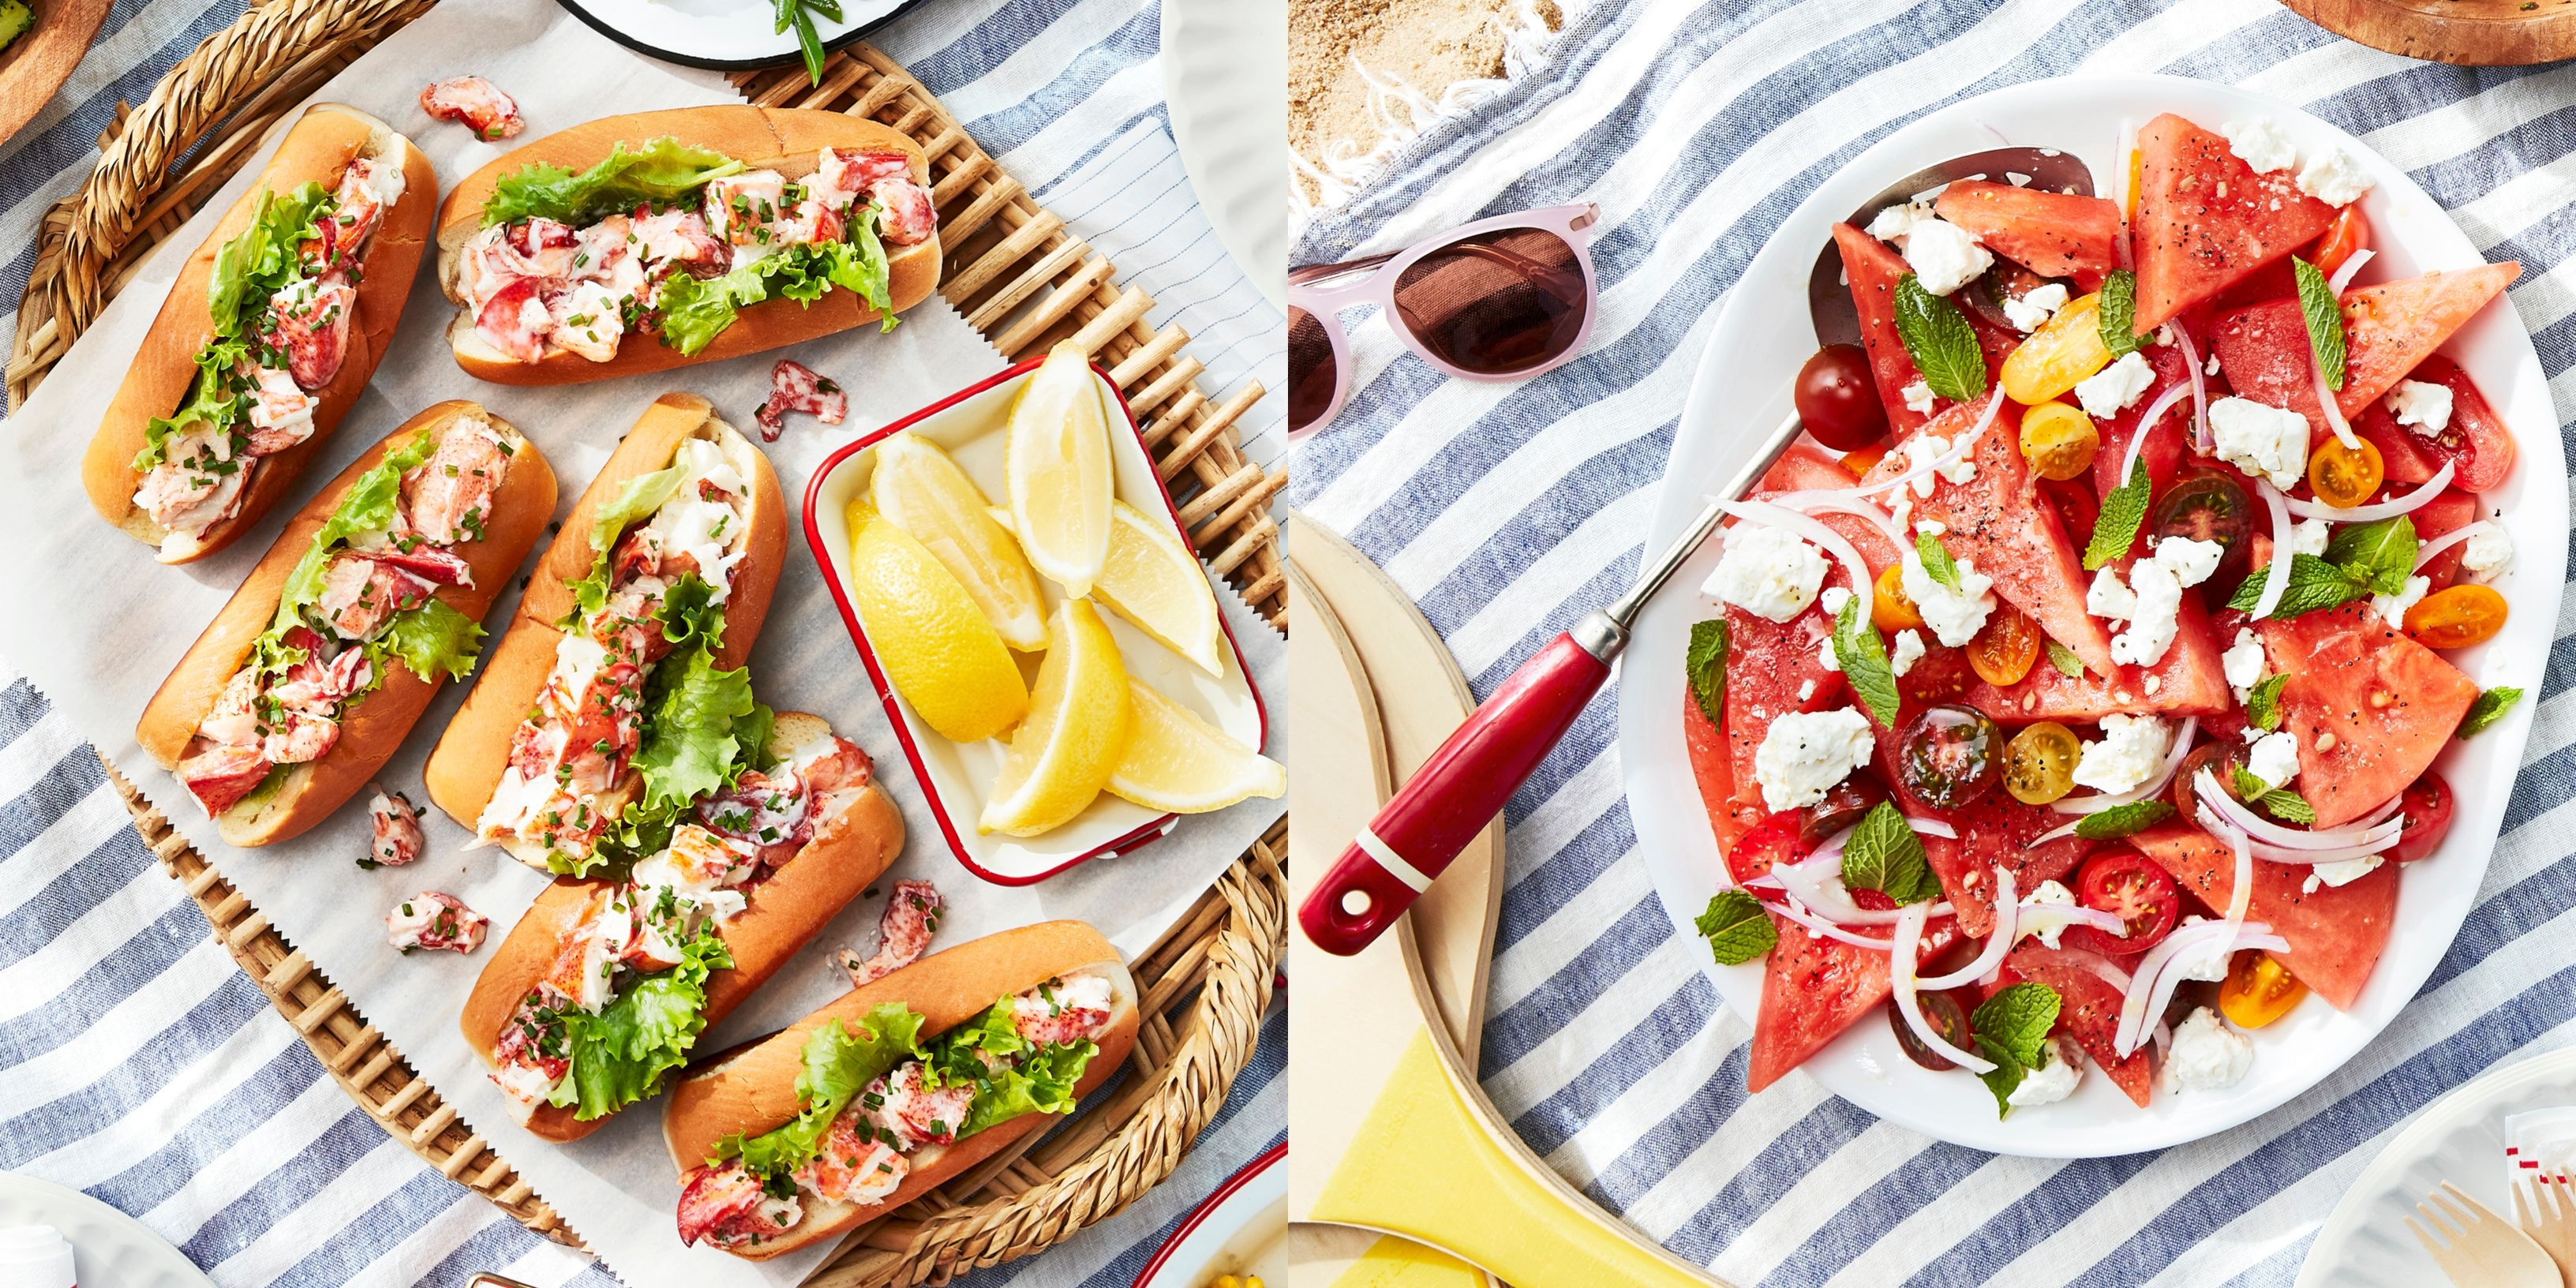 Phenomenal 88 Summer Picnic Food Ideas Easy Recipe Ideas For A Summer Interior Design Ideas Clesiryabchikinfo